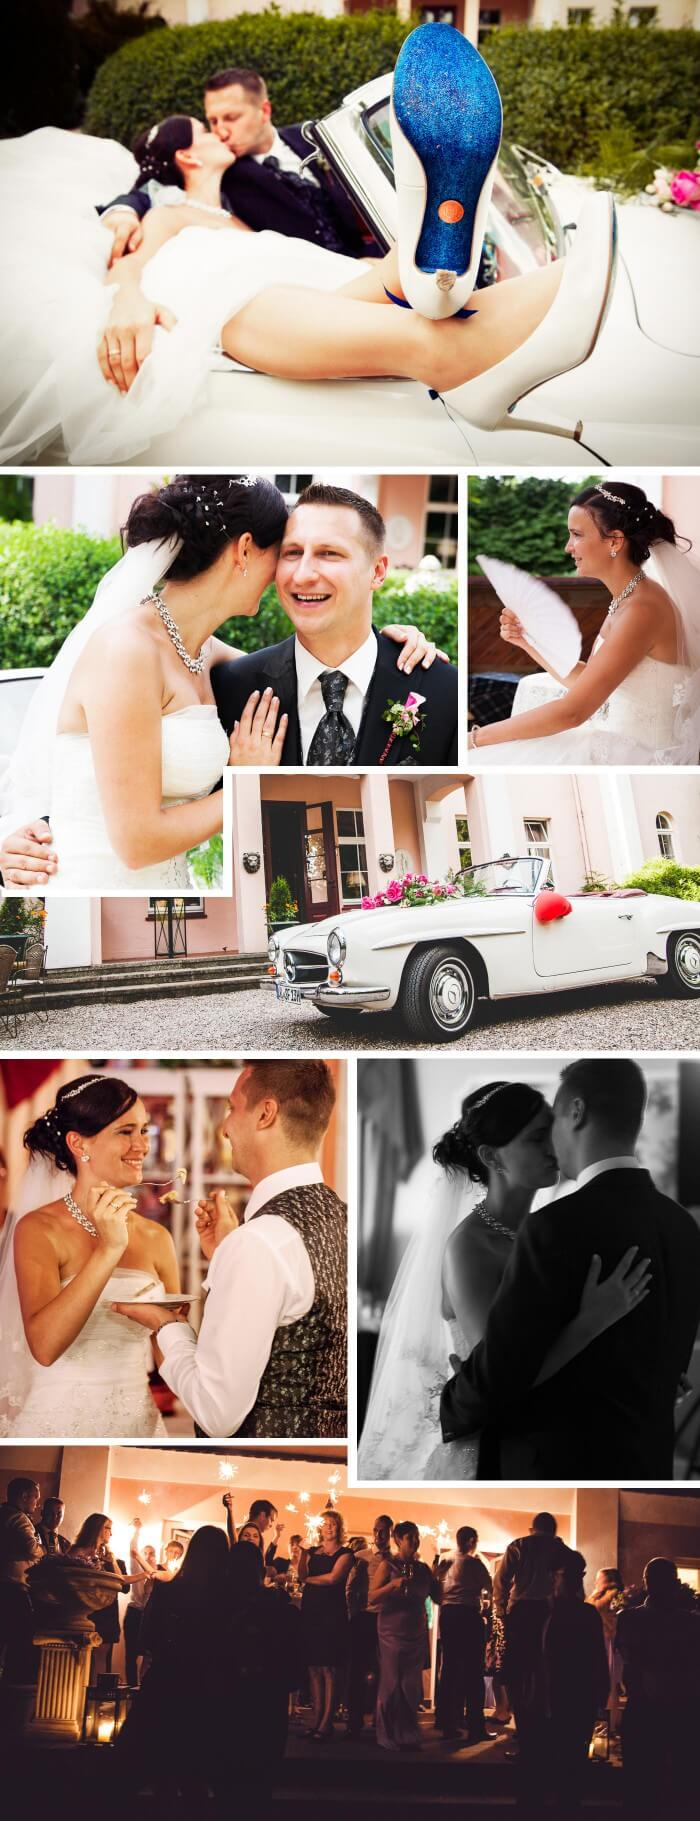 1632424766 698 English wedding in the castle 2 charming photo stories - English wedding in the castle   2 charming photo stories with many inspirations